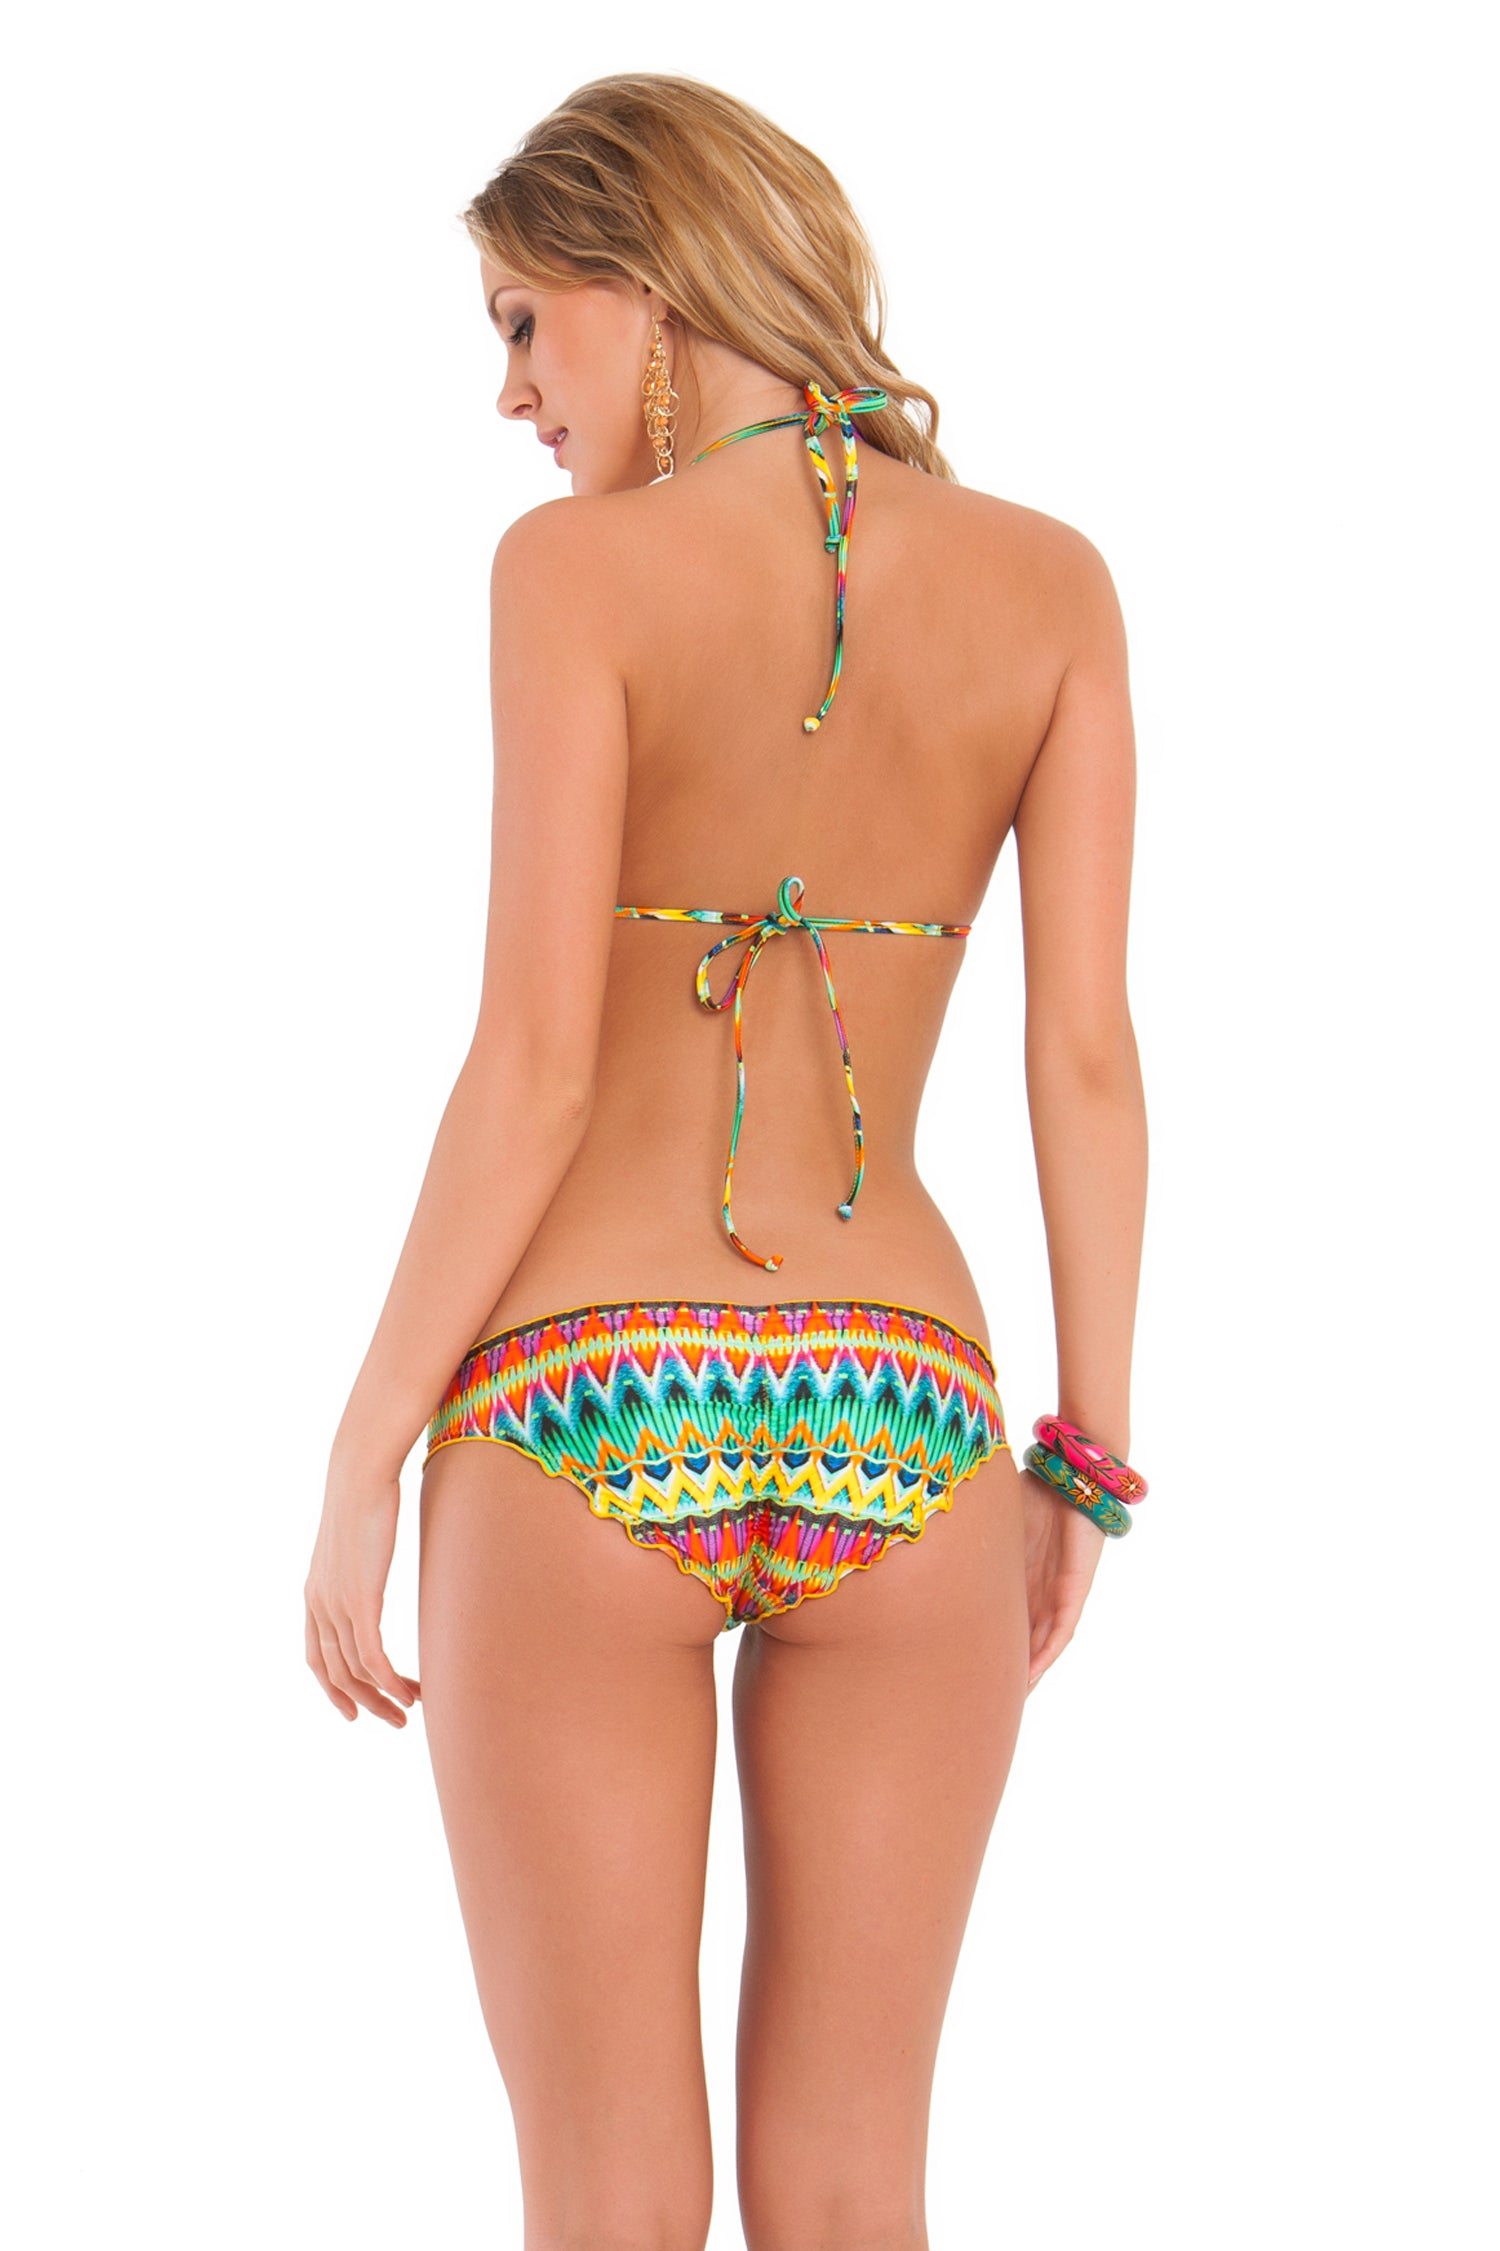 TULUM PARTY - Molded Push Up Bandeau Halter Top & Full Ruched Back Bottom • Multicolor